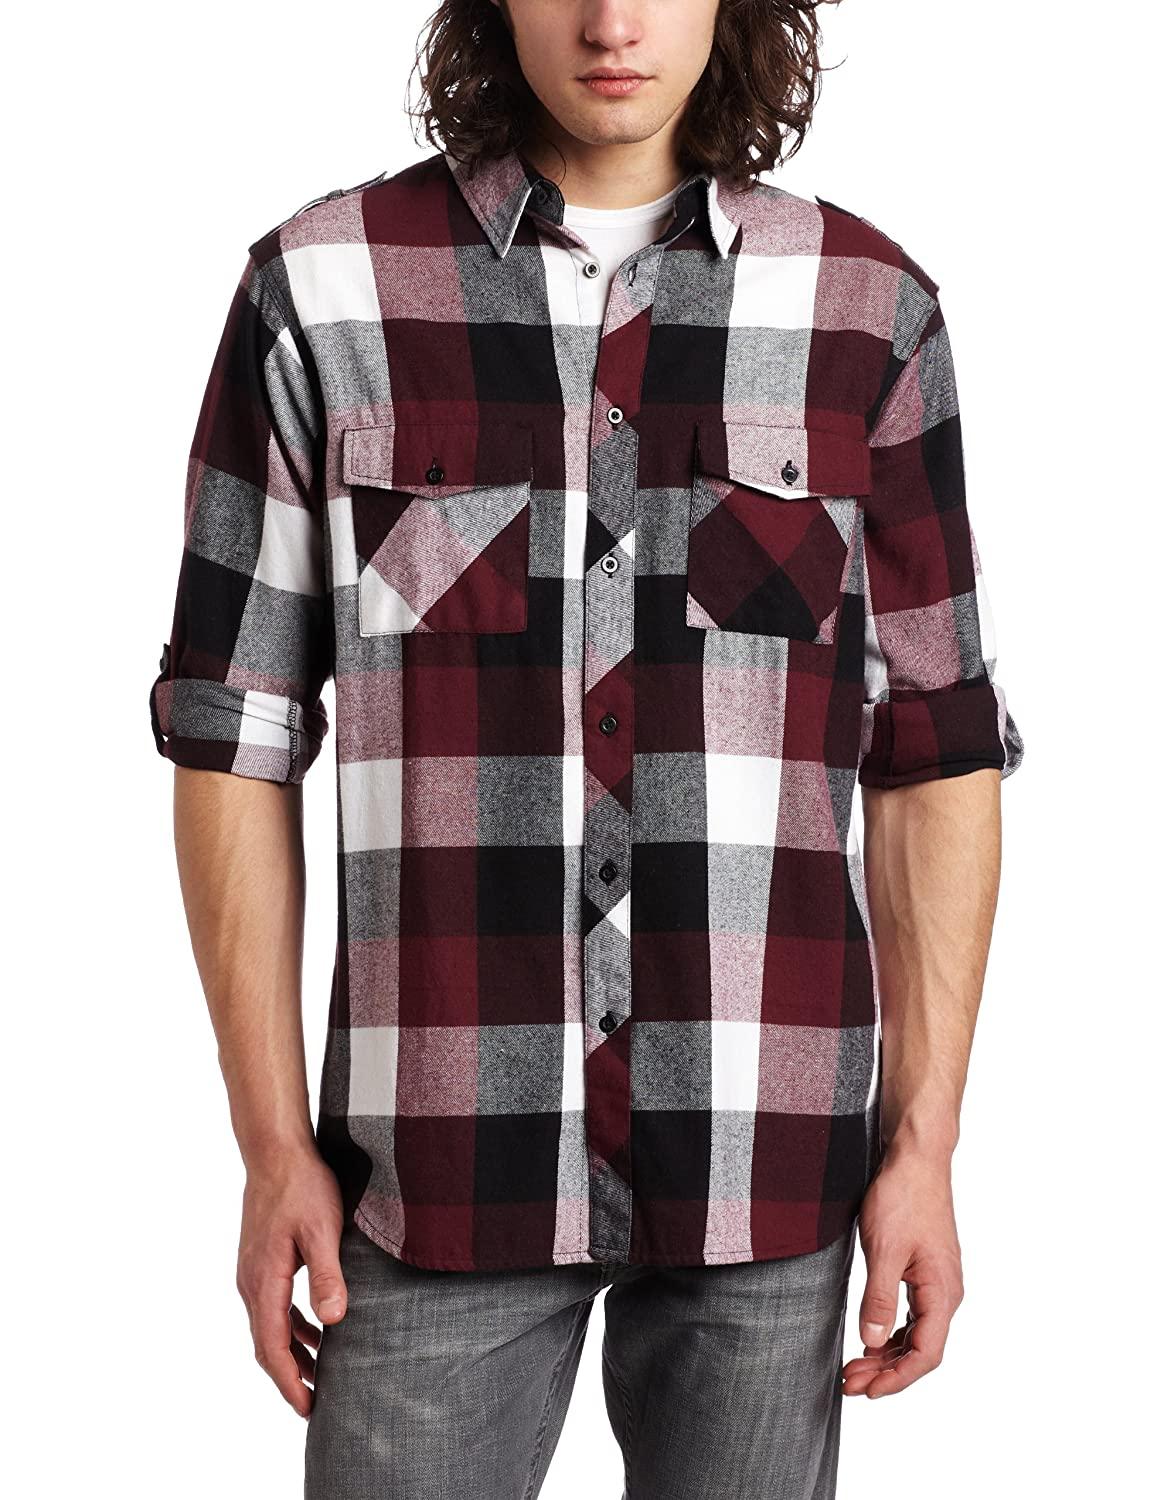 Burnside Young Men's Demi Flannel Shirt, Burgundy, X-Large